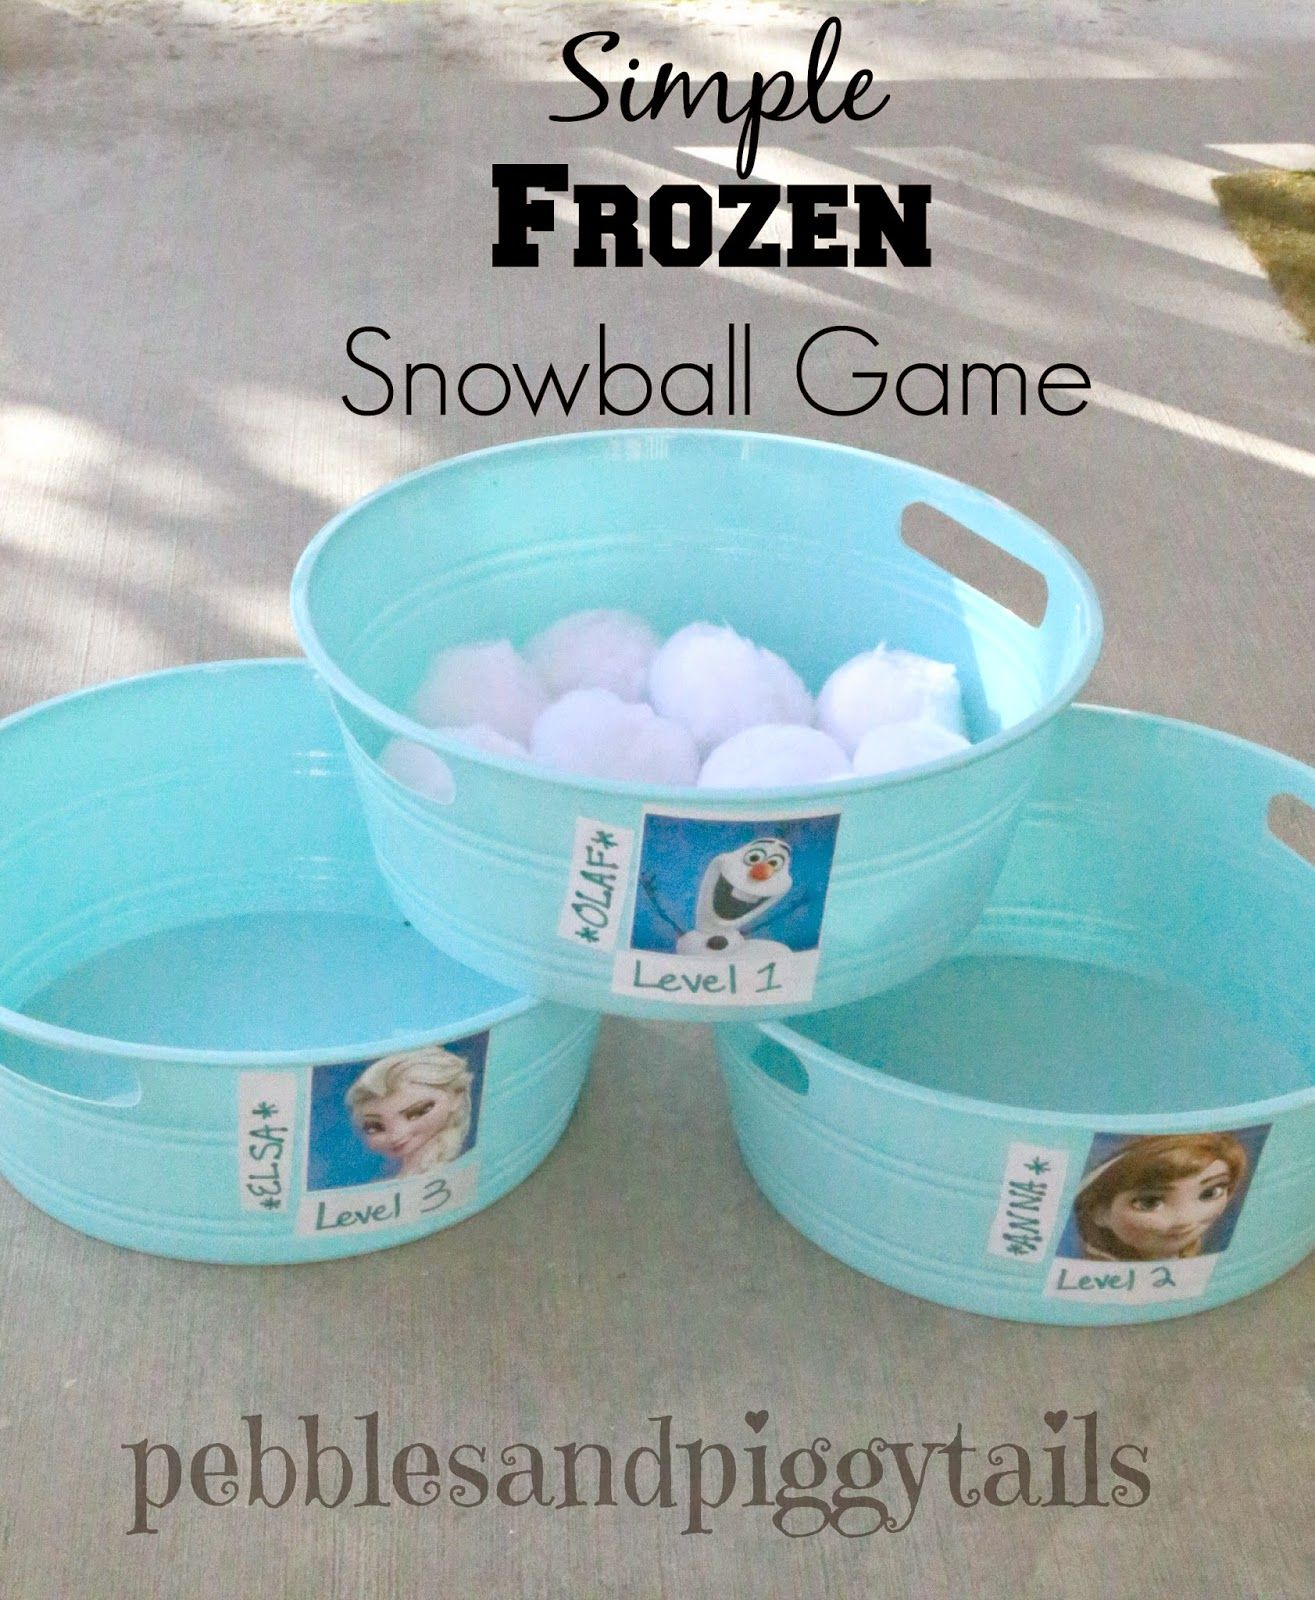 fun snowball toss game to play at a frozen themed birthday party